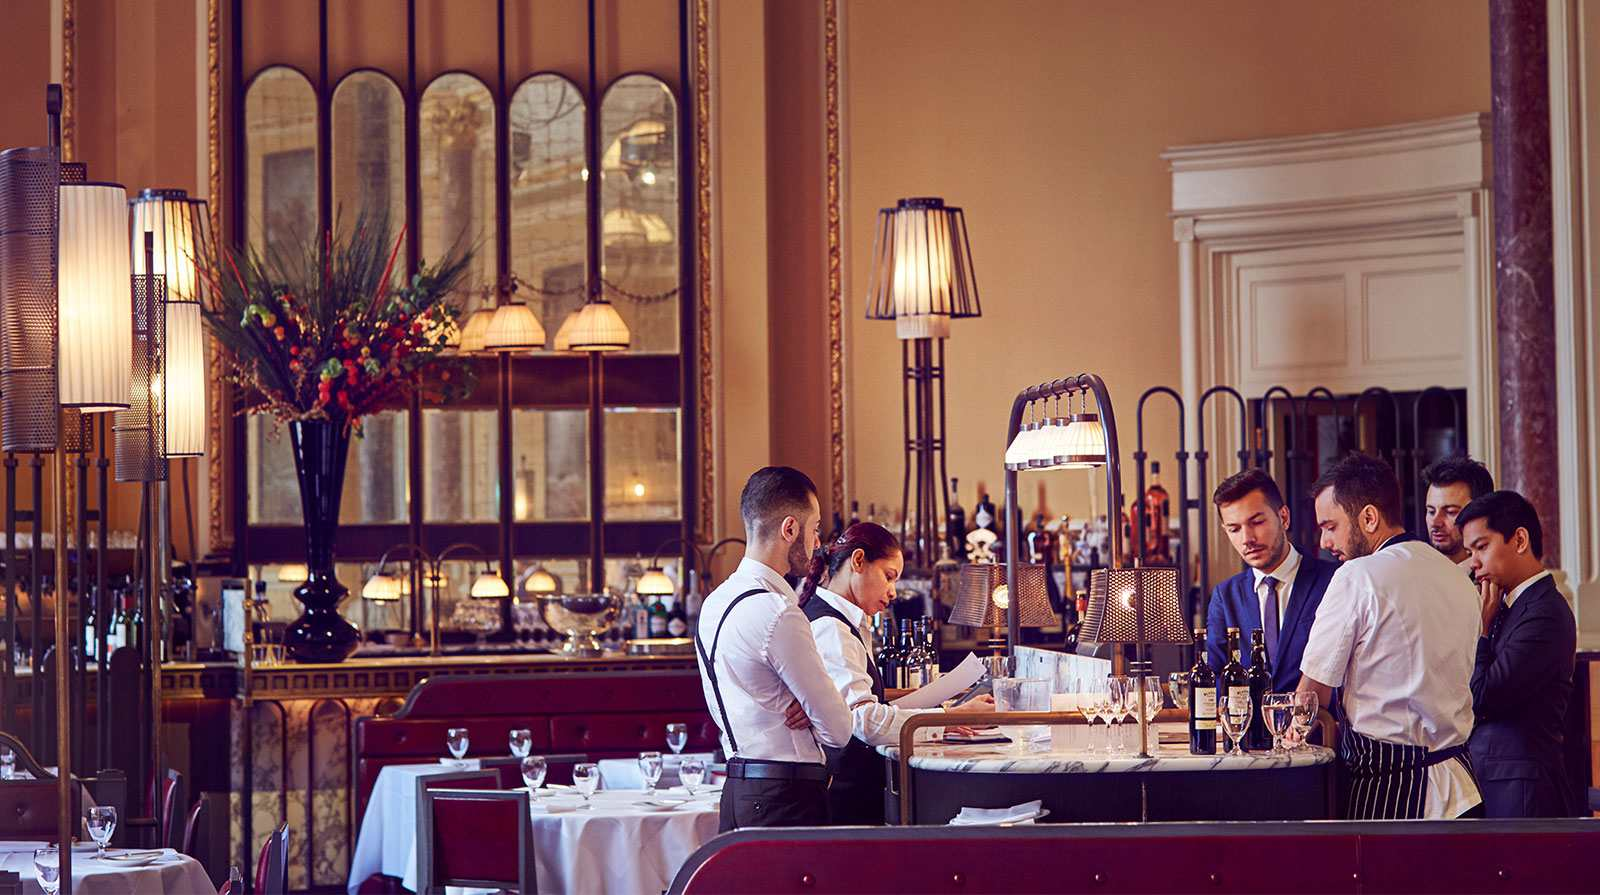 The Gilbert Scott at the Renaissance Hotel in London: an excellent choice for a gastronomic meal while waiting for the Eurostar.